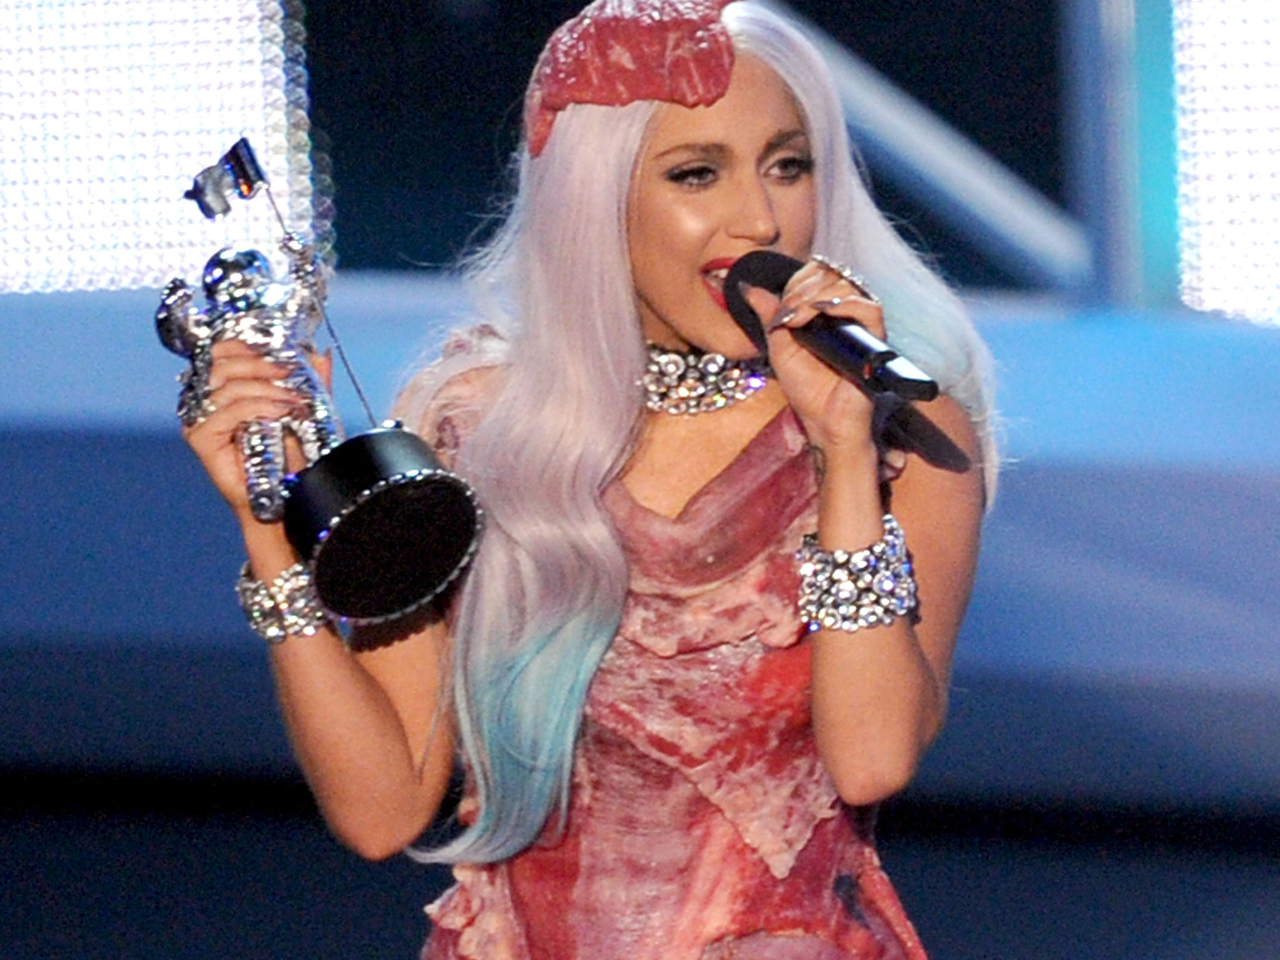 Lady Gaga S Meat Dress Headed For D C Museum Cbs News